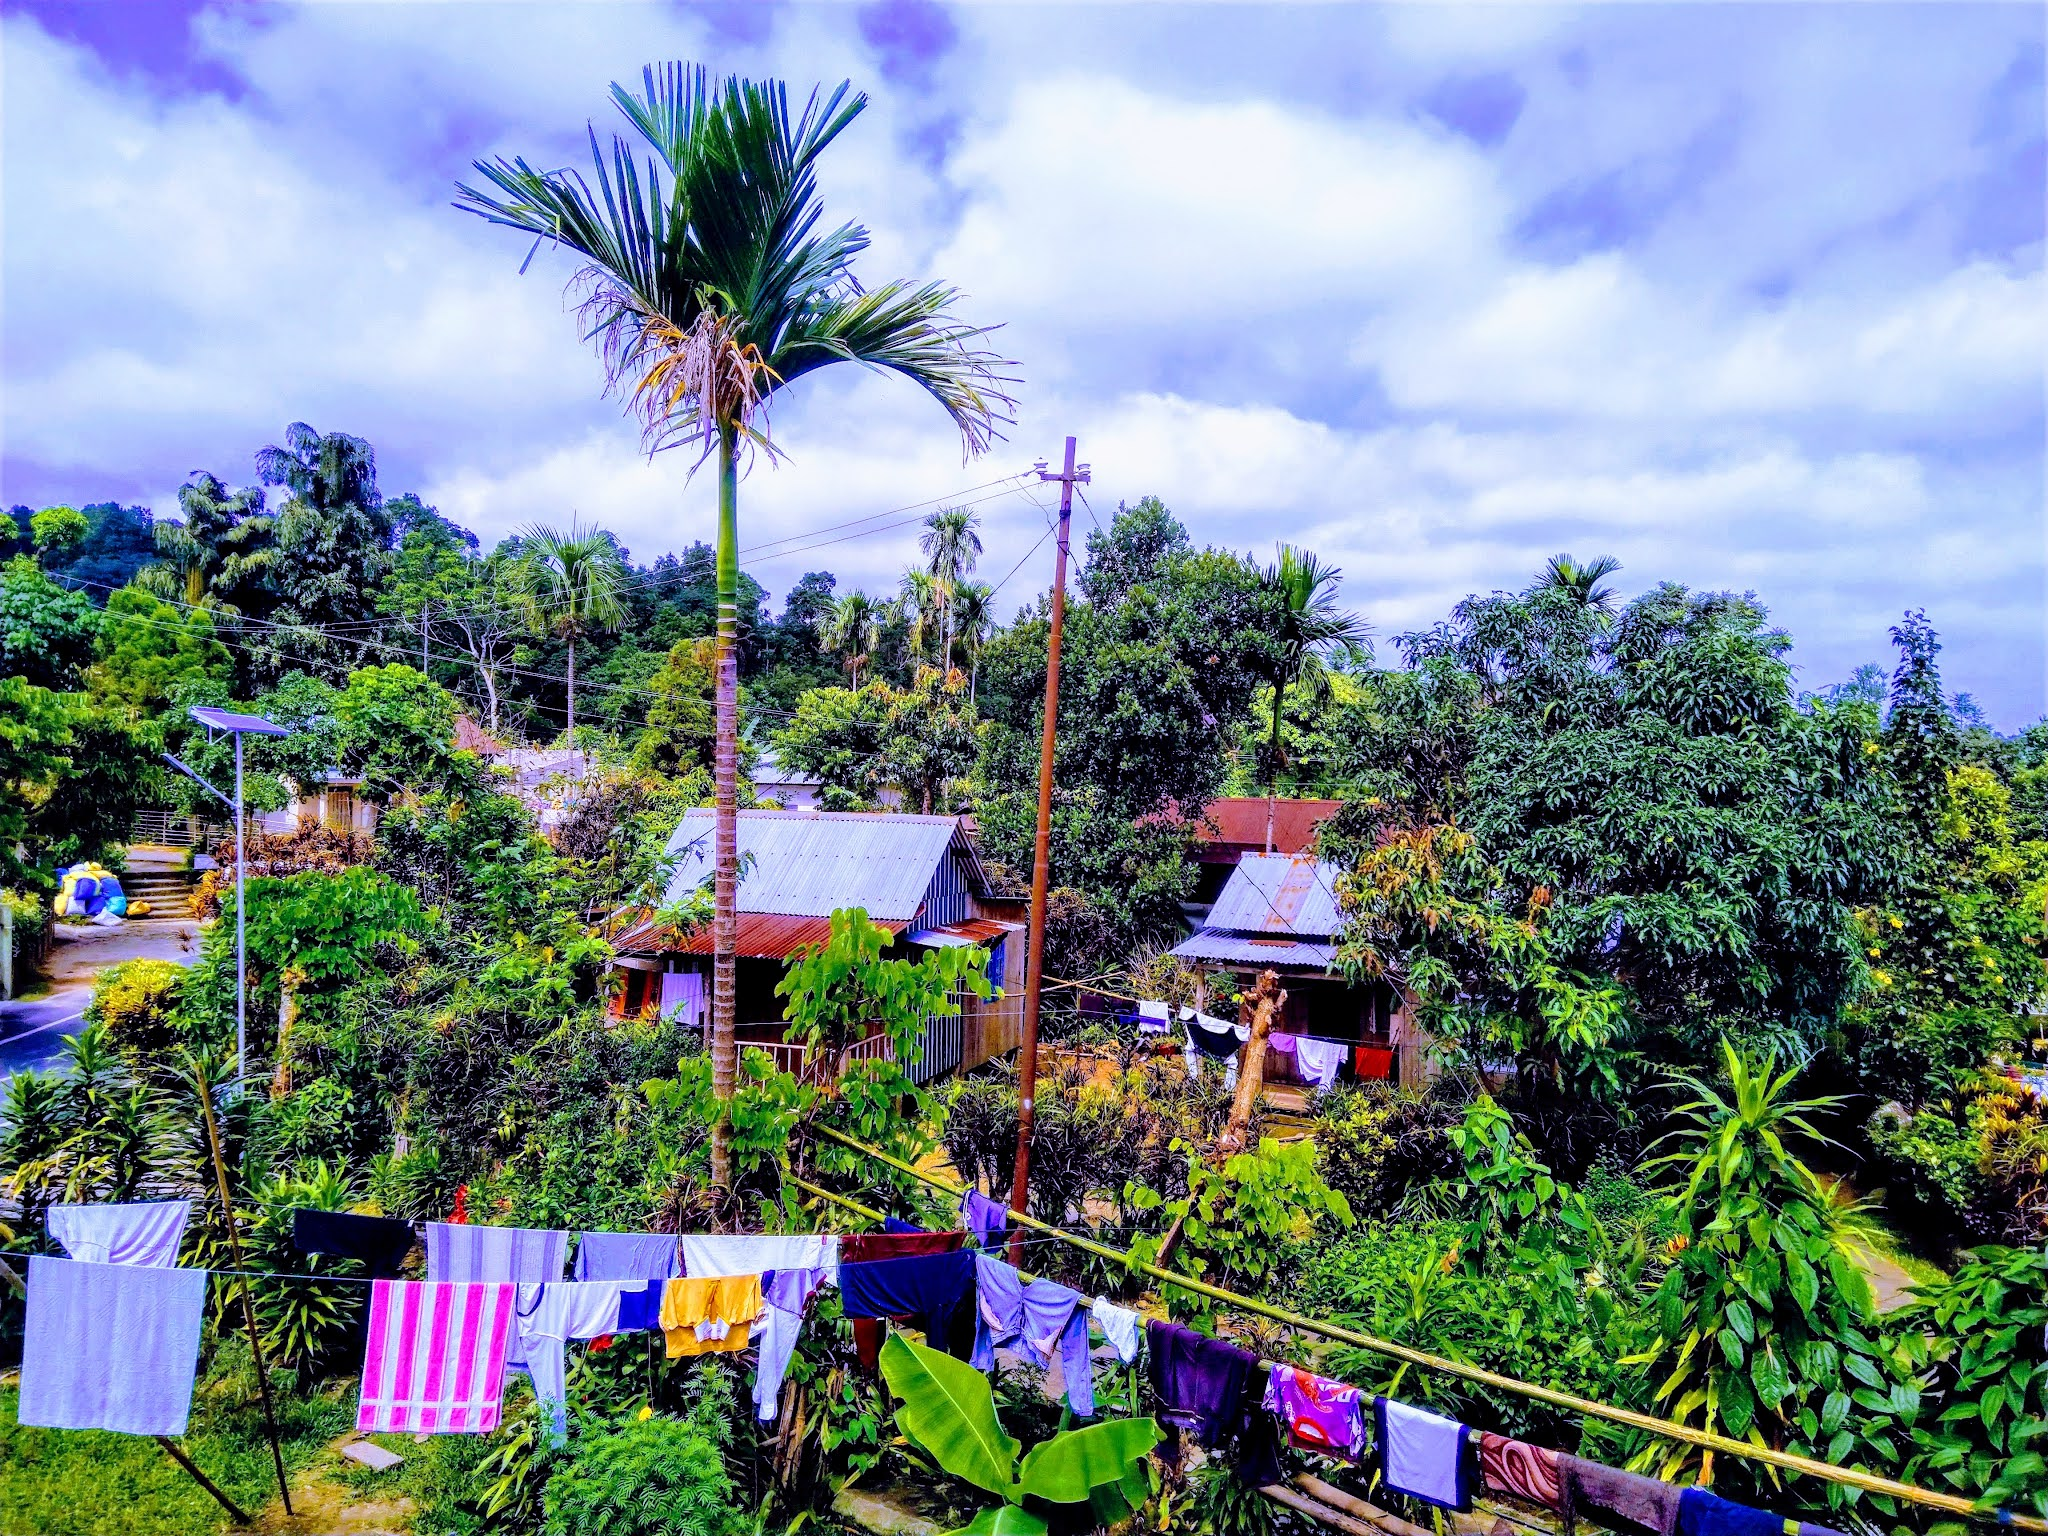 THE CLEANEST VILLAGE OF ASIA: MAWLYNNONG, MEGHALAYA